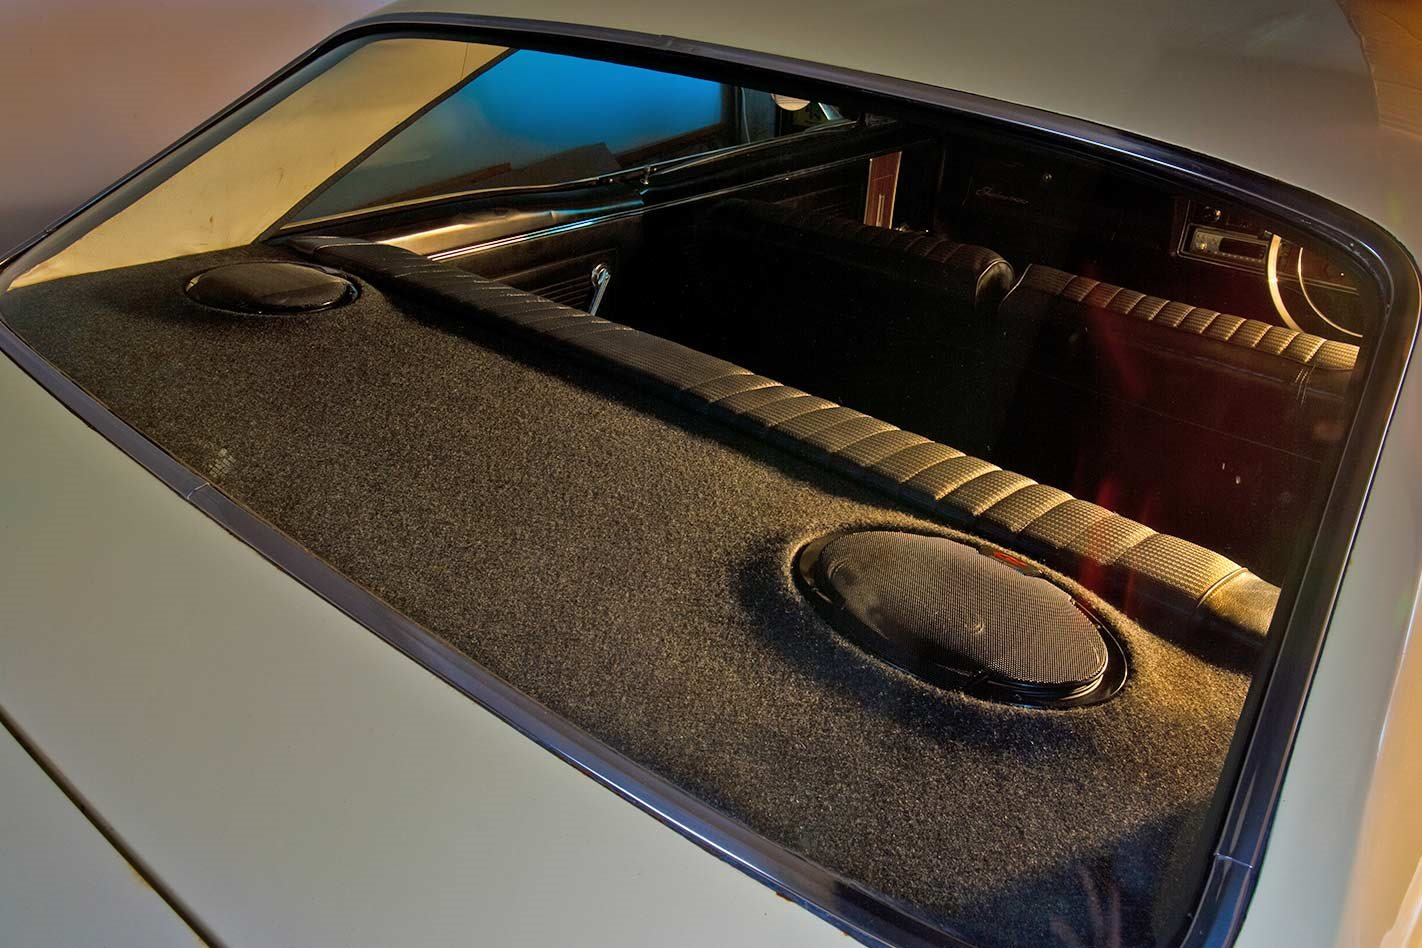 My Kia Performance >> How to make a rear parcel tray for mounting speakers tech ...